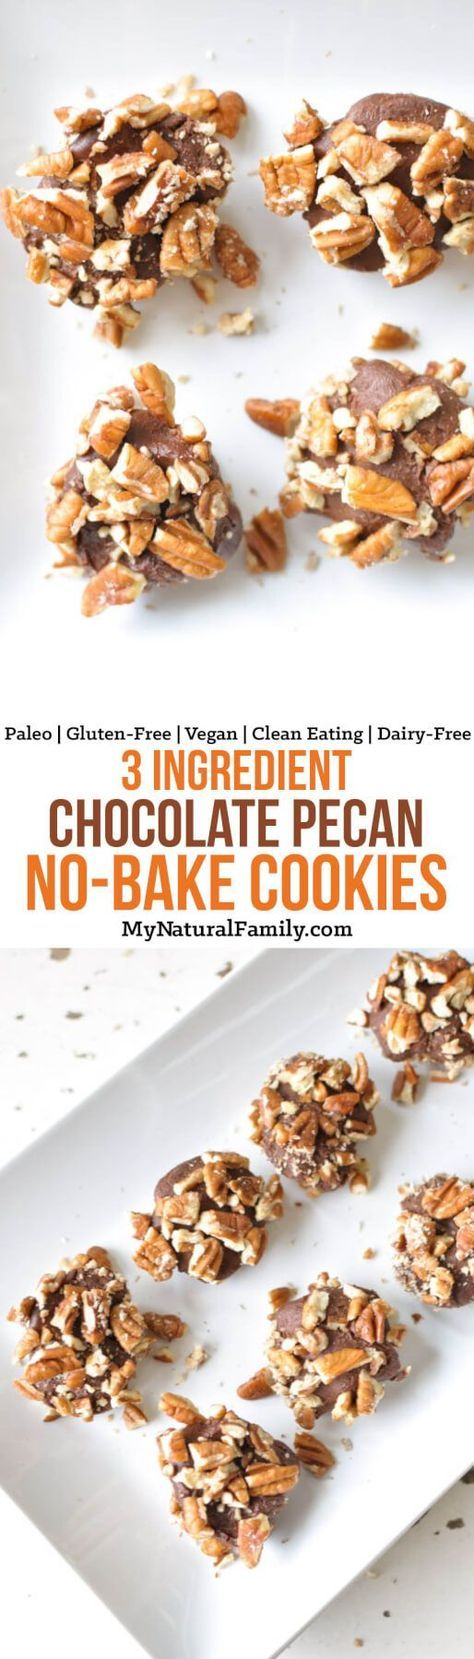 These Paleo no-bake cookies are super simple to whip up with only three wholesome ingredients and are perfect hide in the back of the fridge for late night cravings. {Gluten-Free, Clean Eating, Vegan, Dairy-Free} #paleo #glutenfree #healthydessert #paleodessert #vegan #vegandessert #dairyfree #dairyfreedessert #paleocookies #glutenfreecookies #healthycookies #healthychocolate #vegancookies #paleorecipe #paleorecipes #glutenfreerecipe #glutenfreerecipes